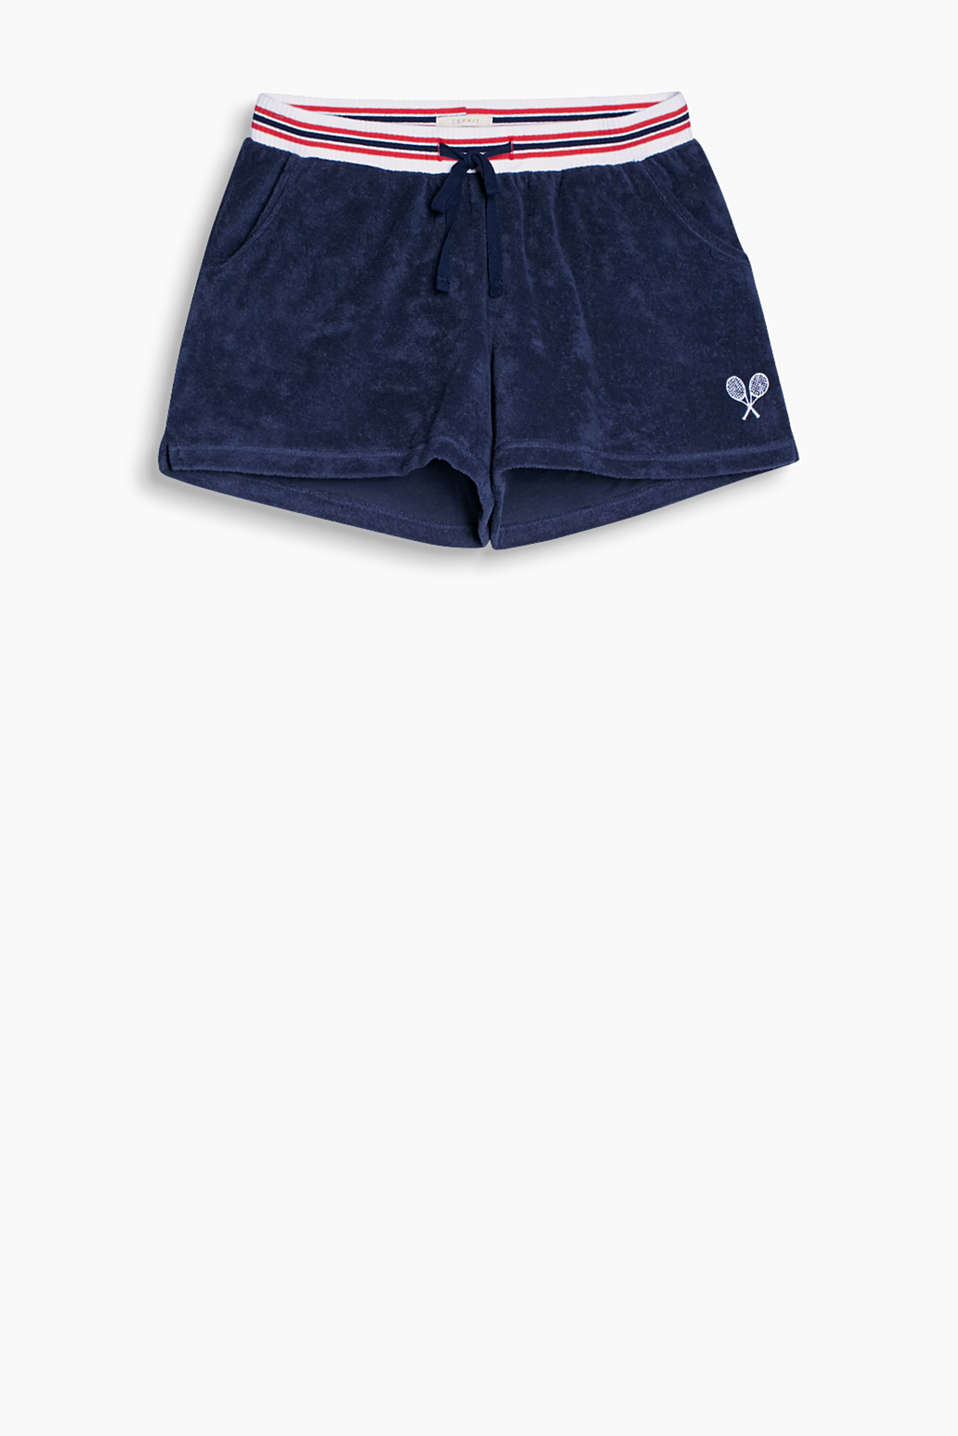 Sporty terrycloth shorts in a tennis look with a striped elasticated waistband and a small appliqué